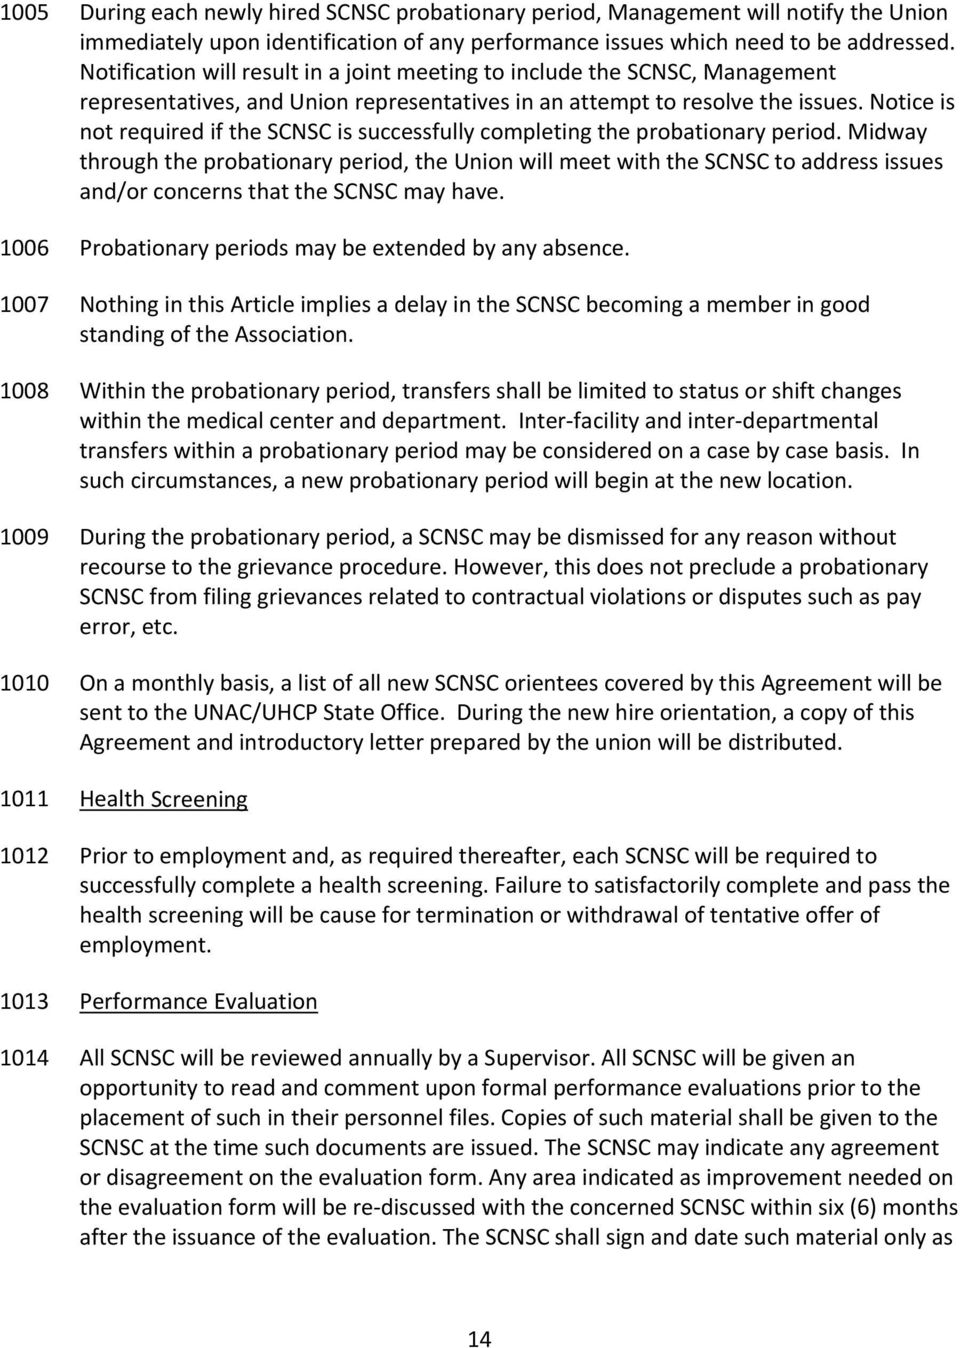 Kaiser unacuhcp labor management agreement between and pdf notice is not required if the scnsc is successfully completing the probationary period platinumwayz